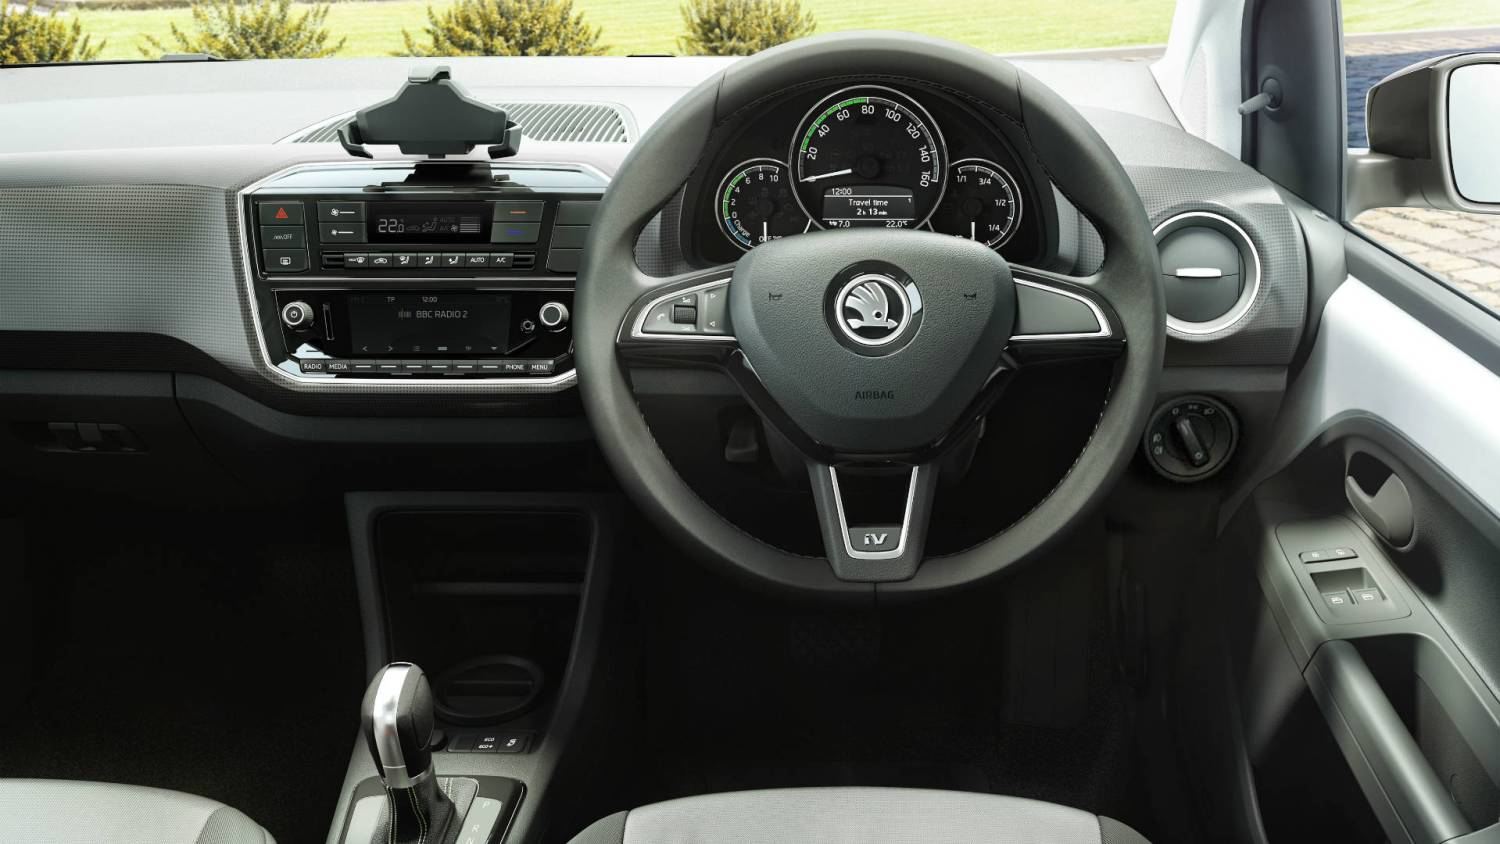 Skoda Citigo electric car interior